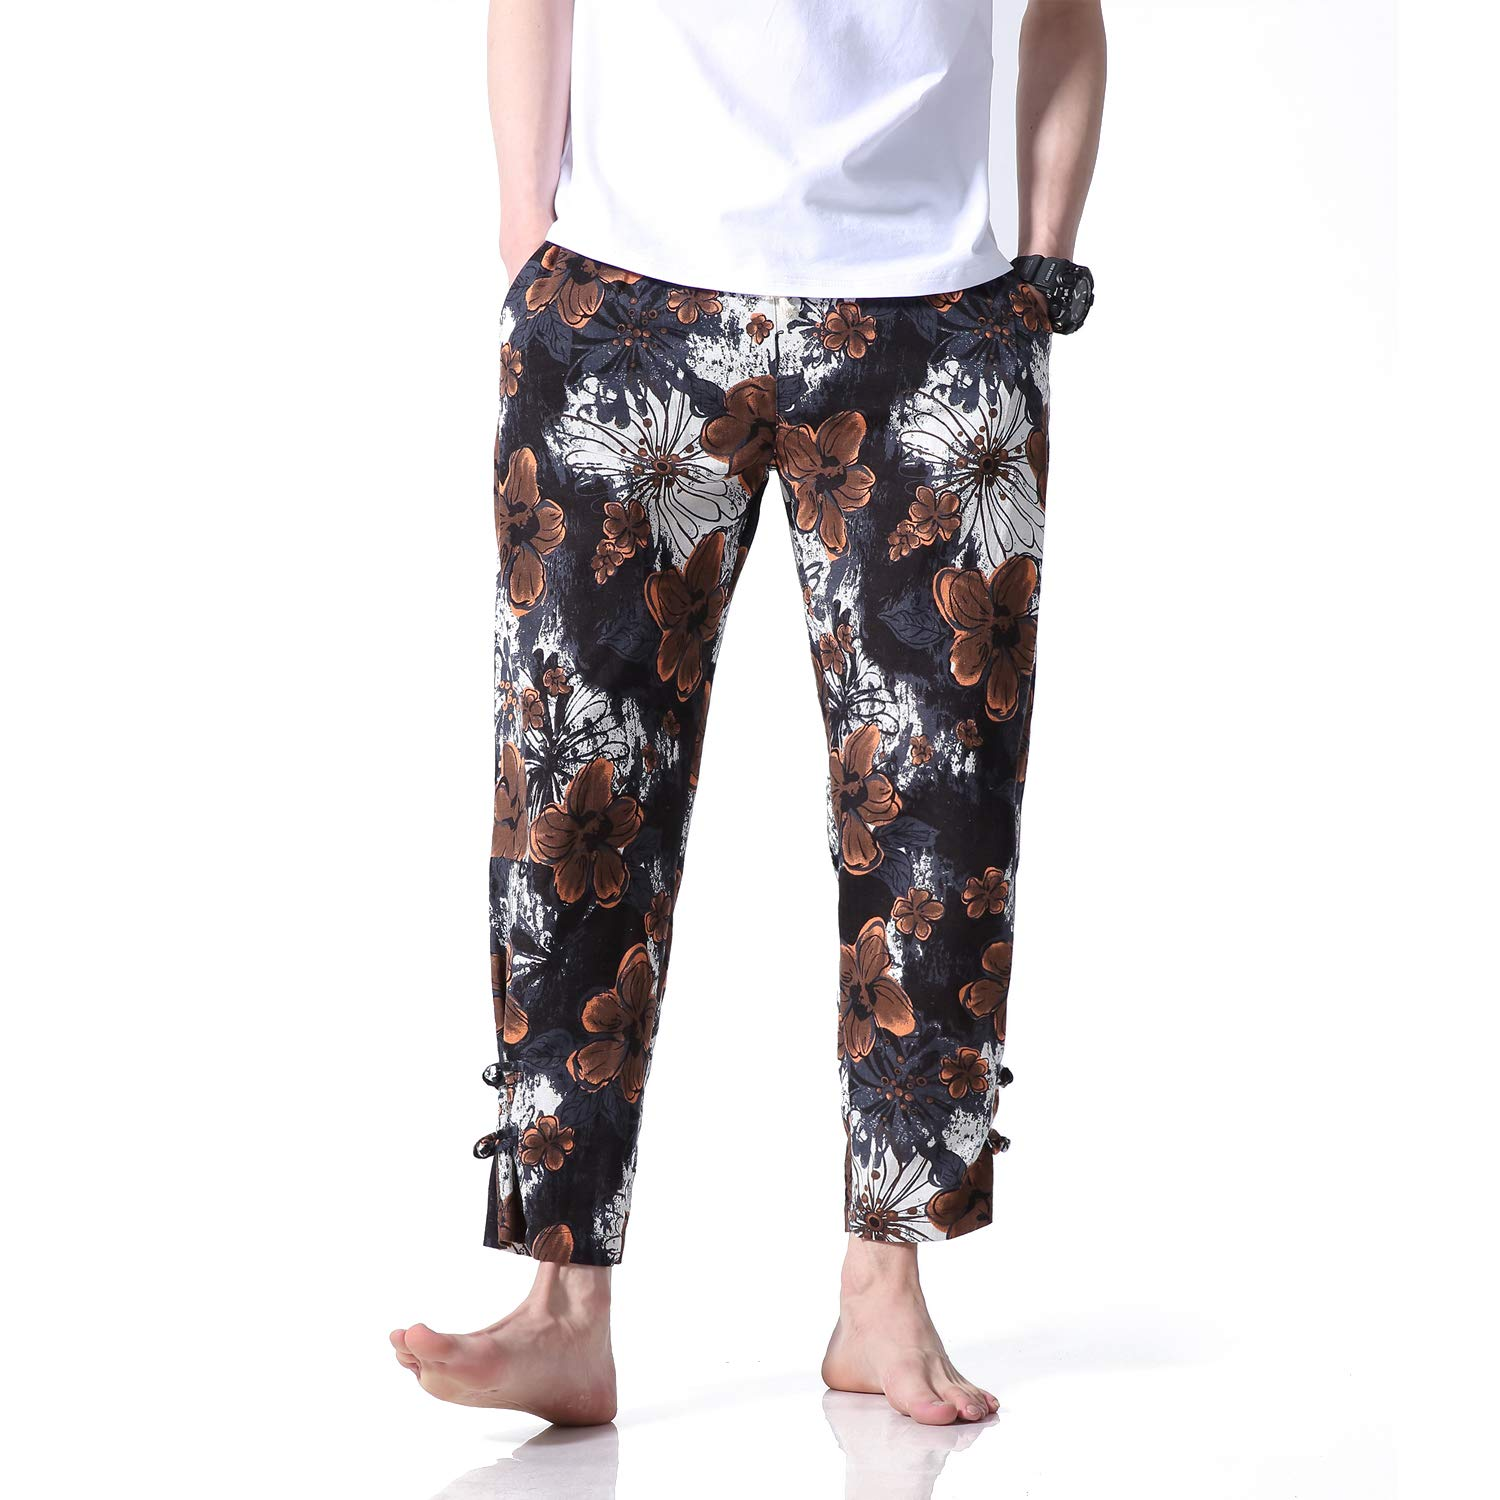 3938cddd81f Top 10 wholesale Hippie Tight Pants - Chinabrands.com